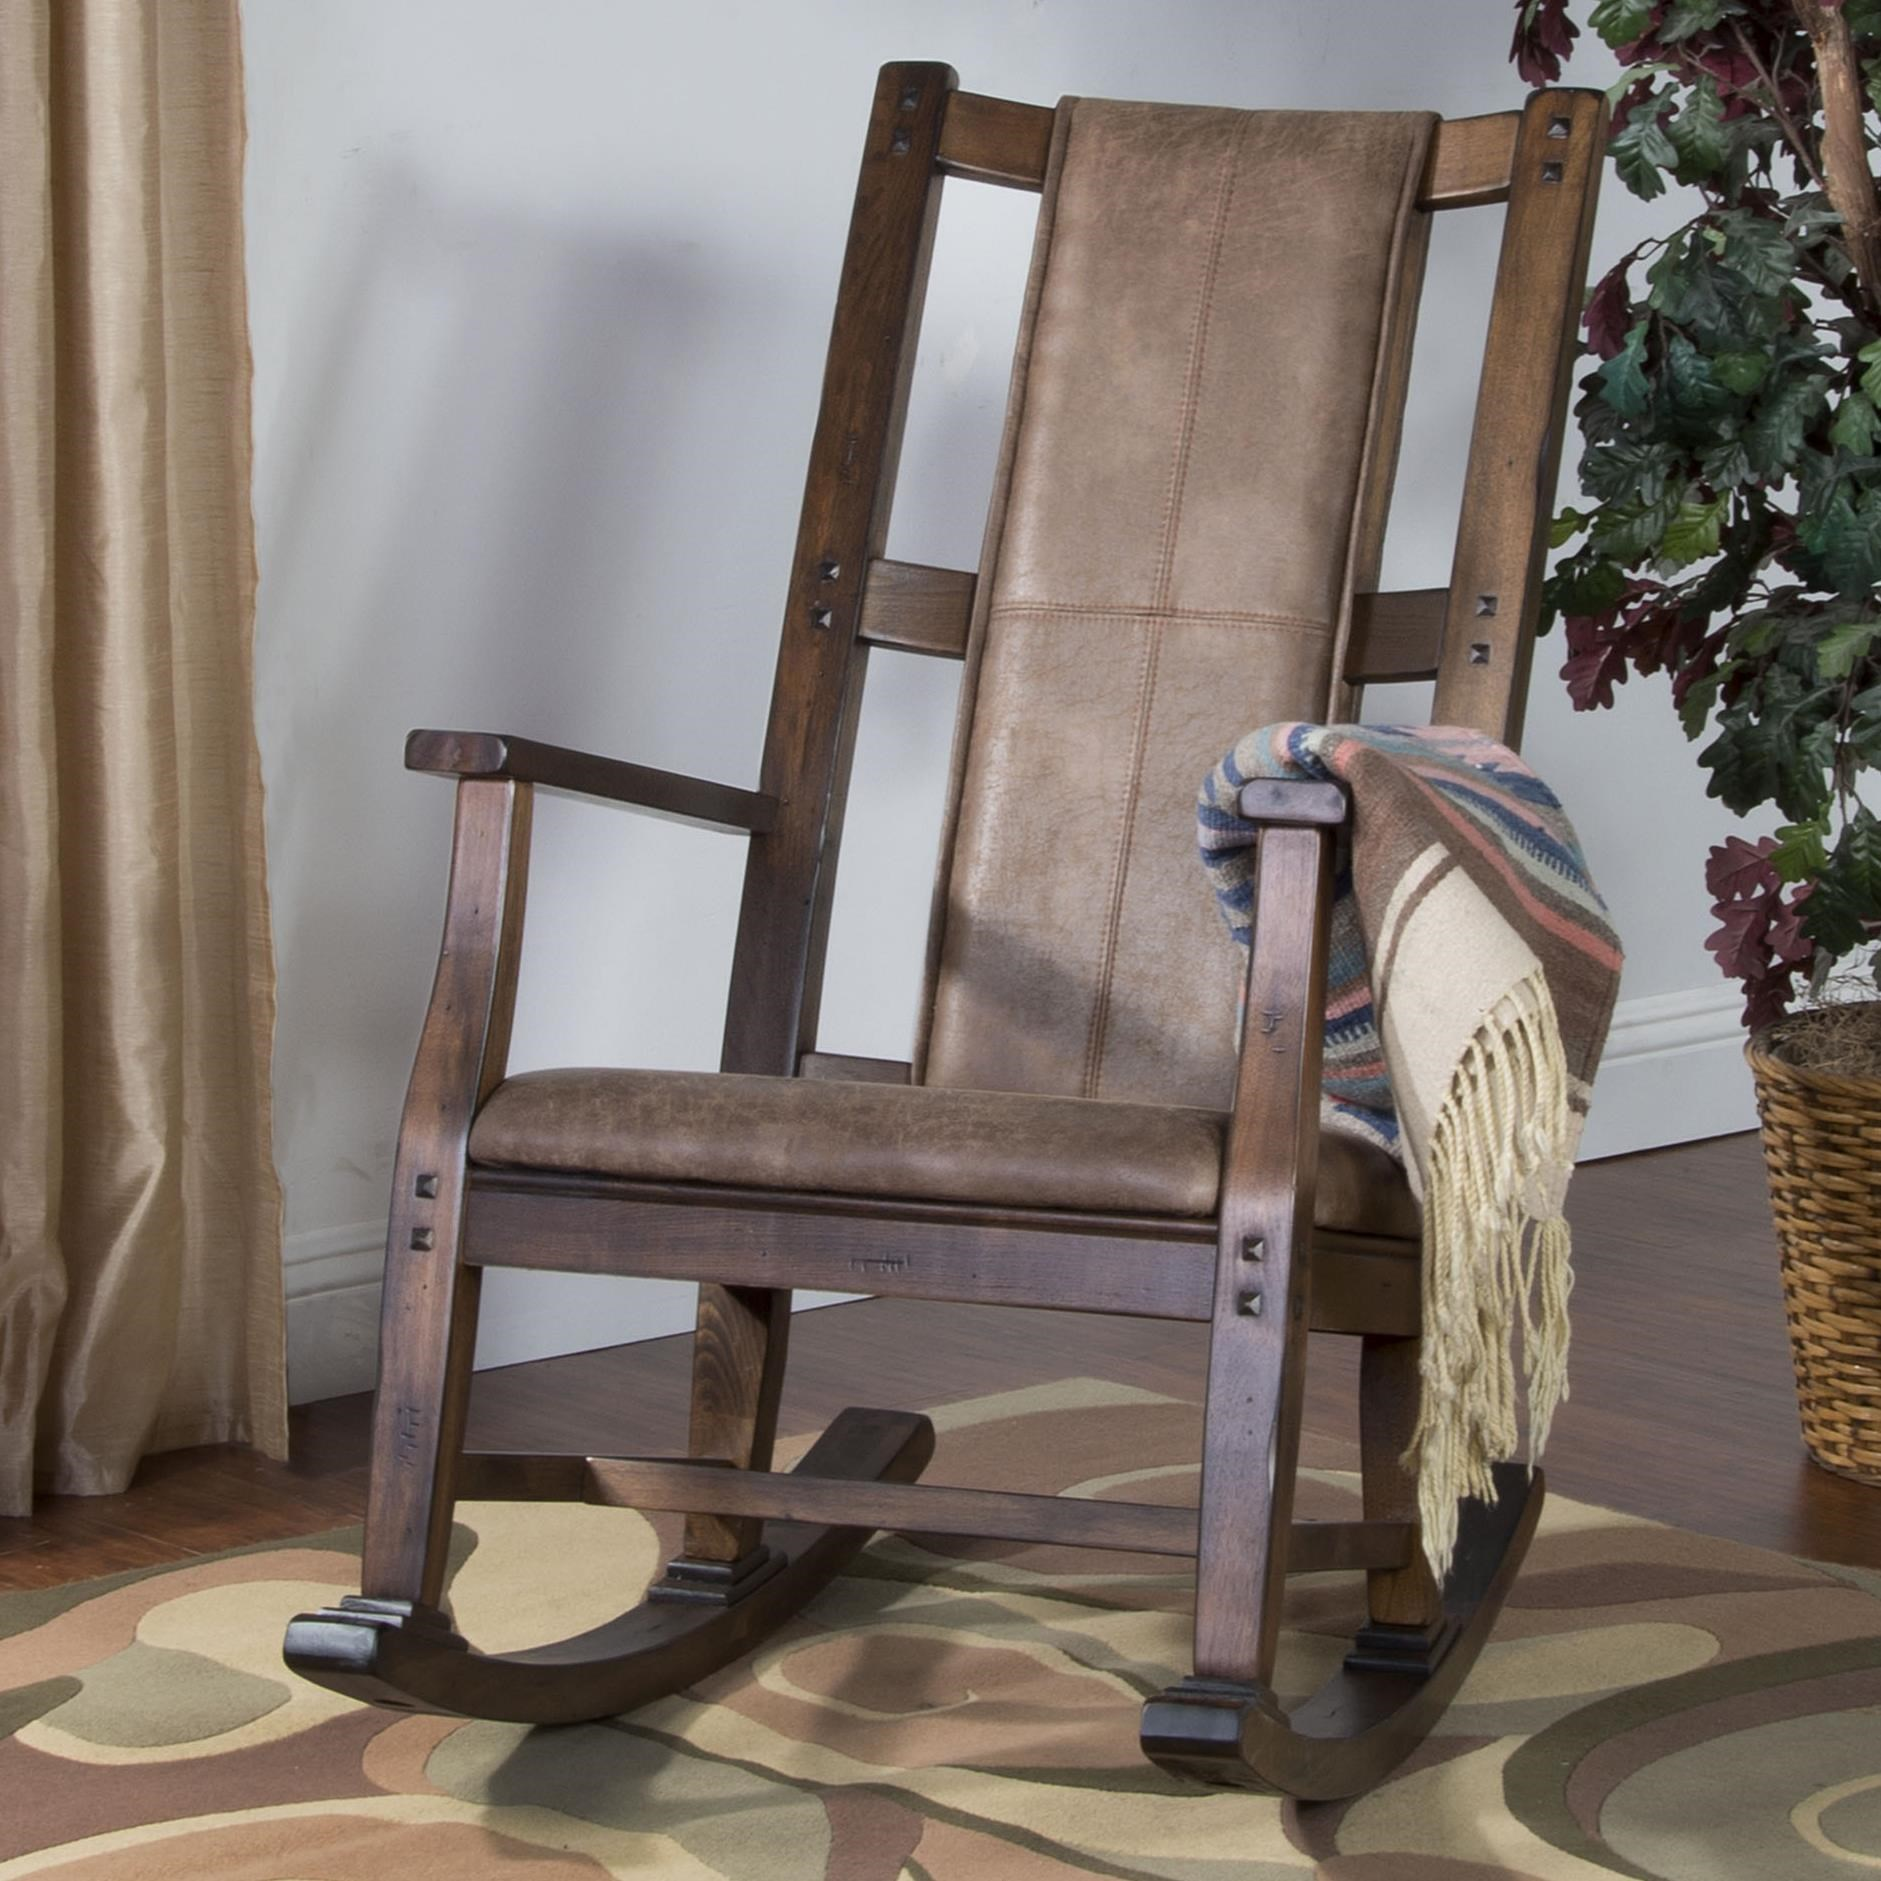 Wood Rocking Chair Savannah Wood Rocker W Cushion Seat Back By Sunny Designs At Walker S Furniture